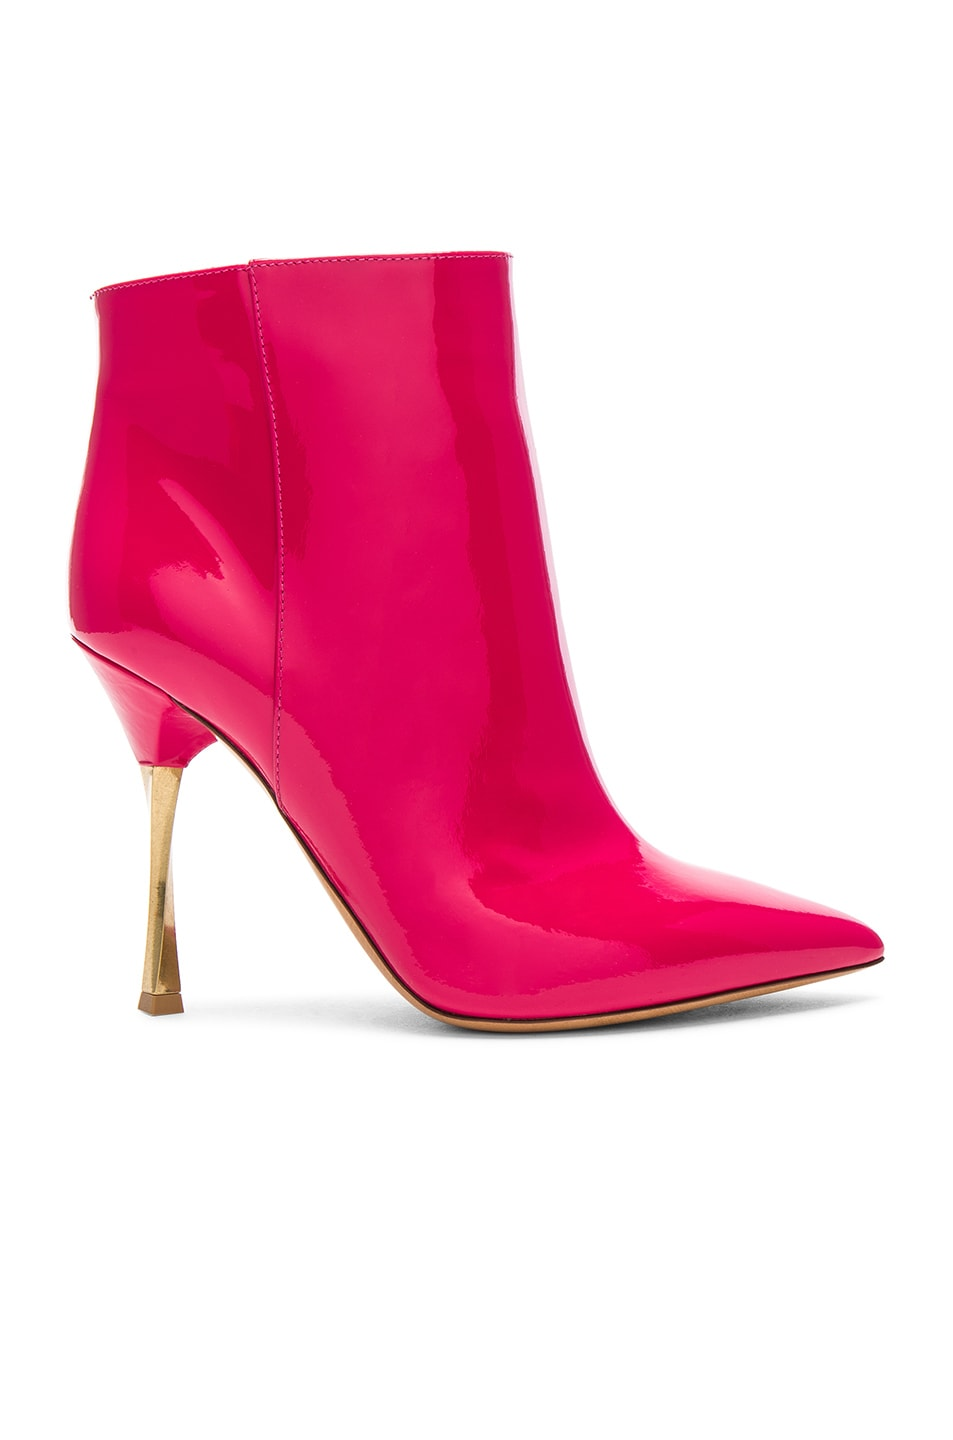 Image 1 of Valentino Patent Leather Ankle Boots in Fuchsia